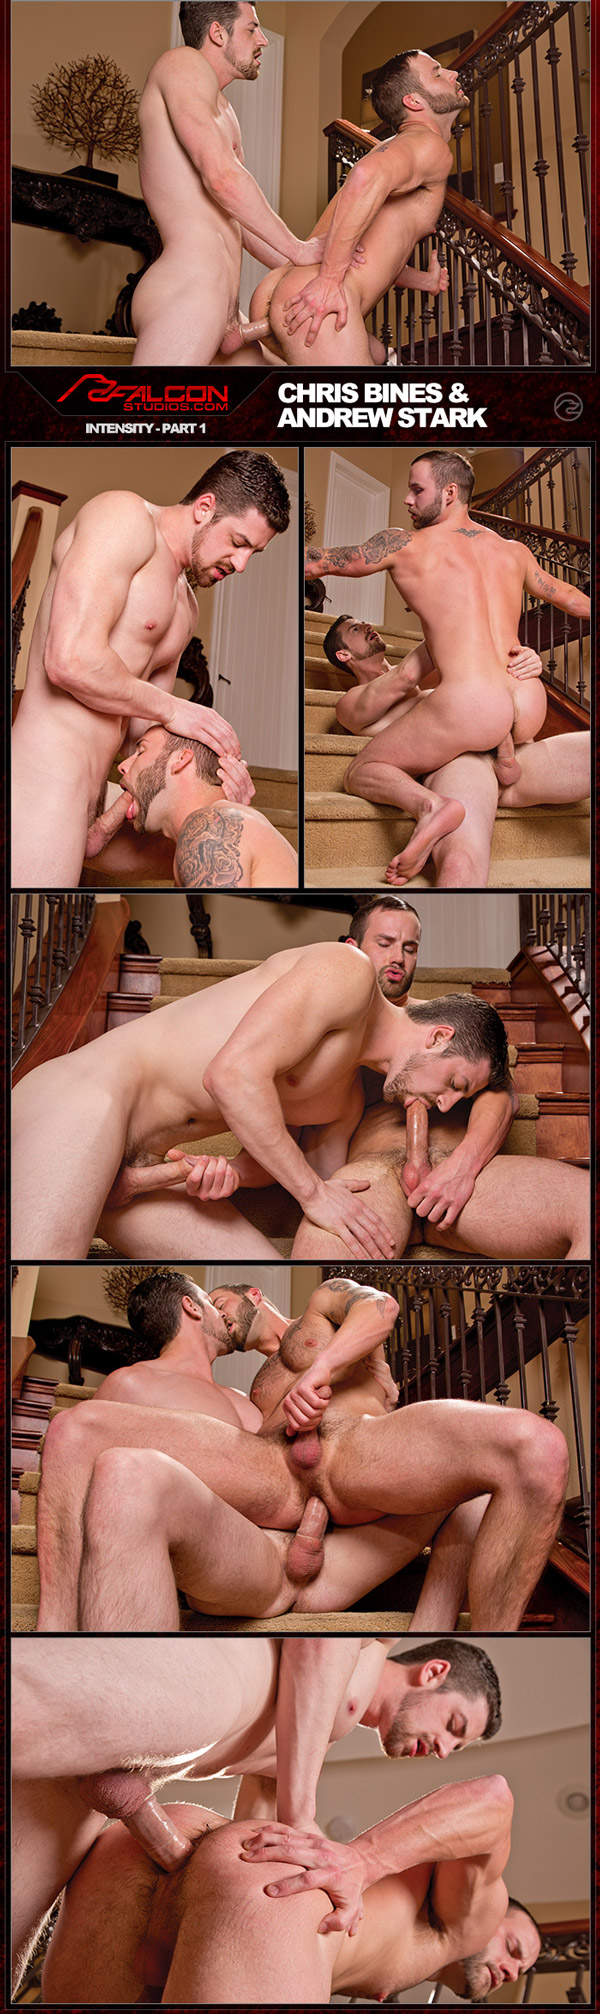 Intensity: Part 1 (Andrew Stark & Chris Bines) (Scene 1) at FalconStudios